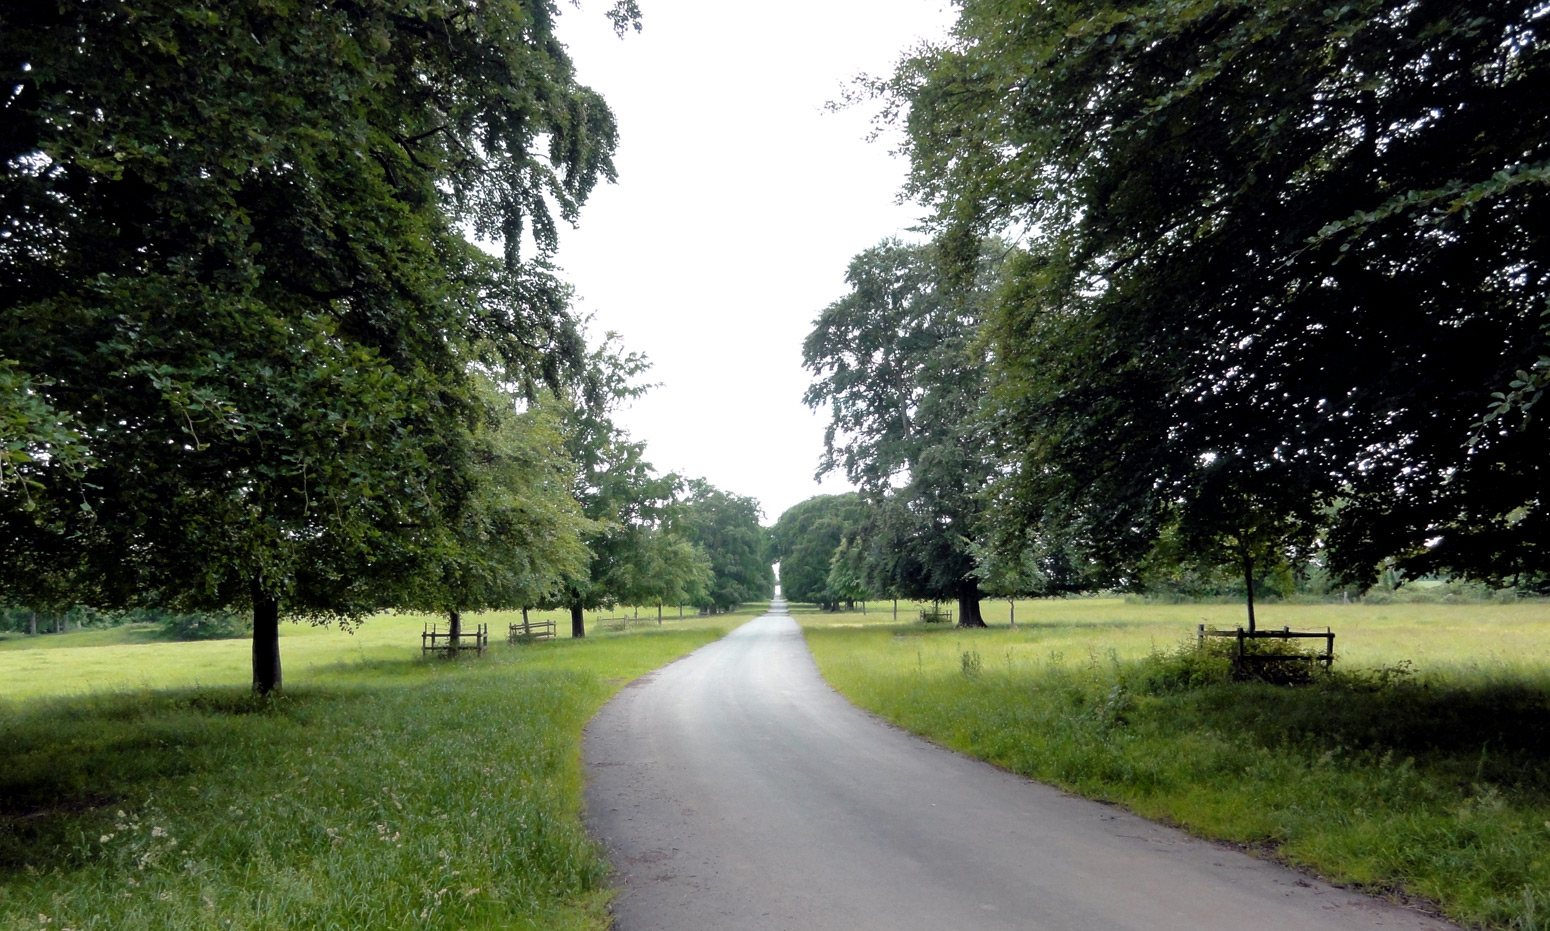 Parlington Drive at the Parlington Estate